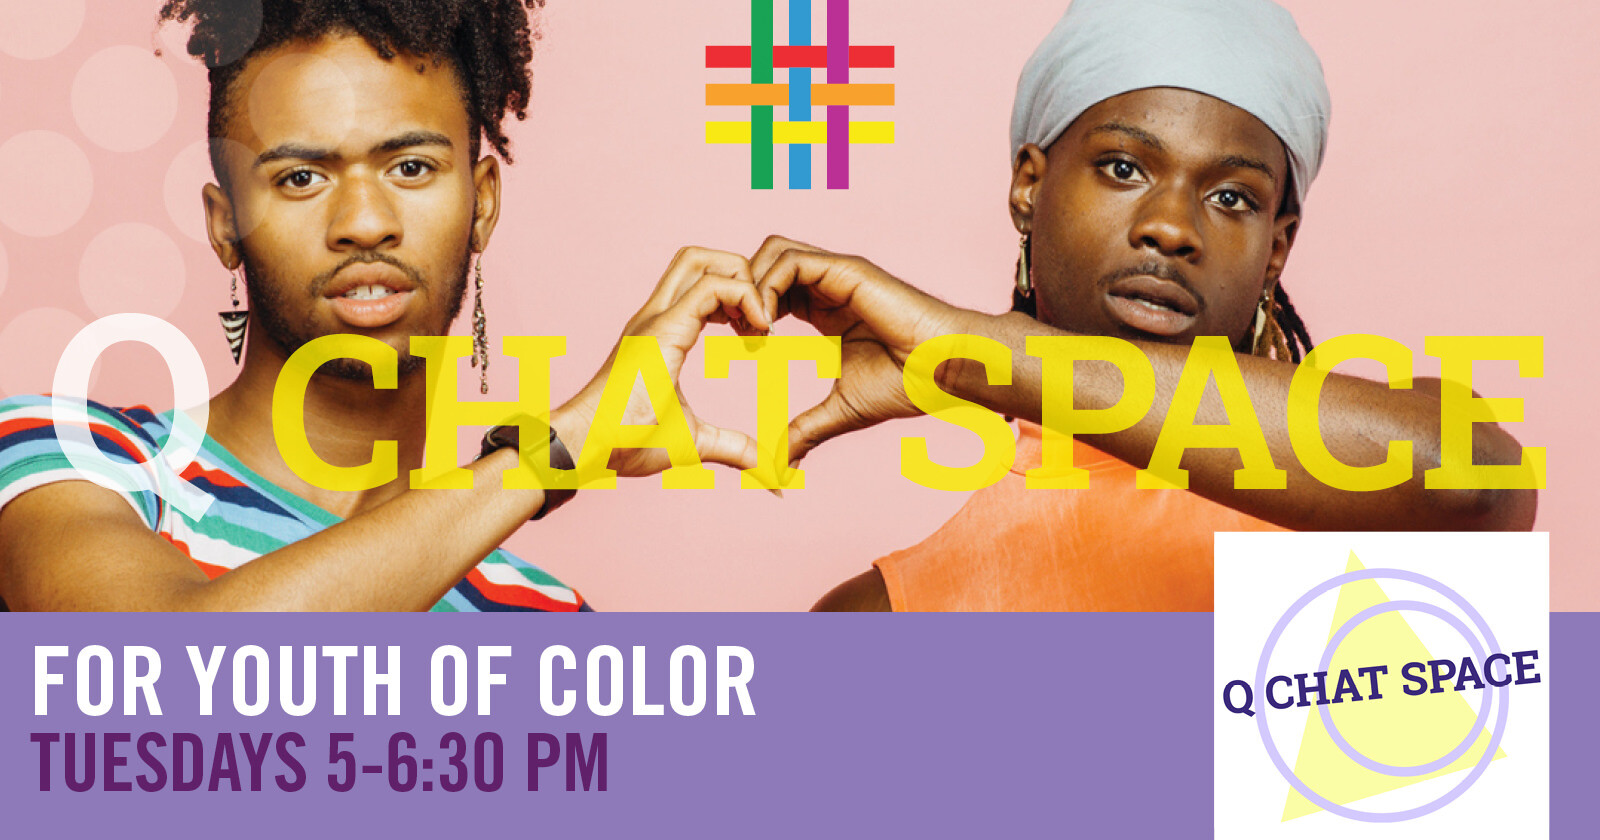 Q Chat Space: for Youth of Color | Brooklyn Community Pride Center